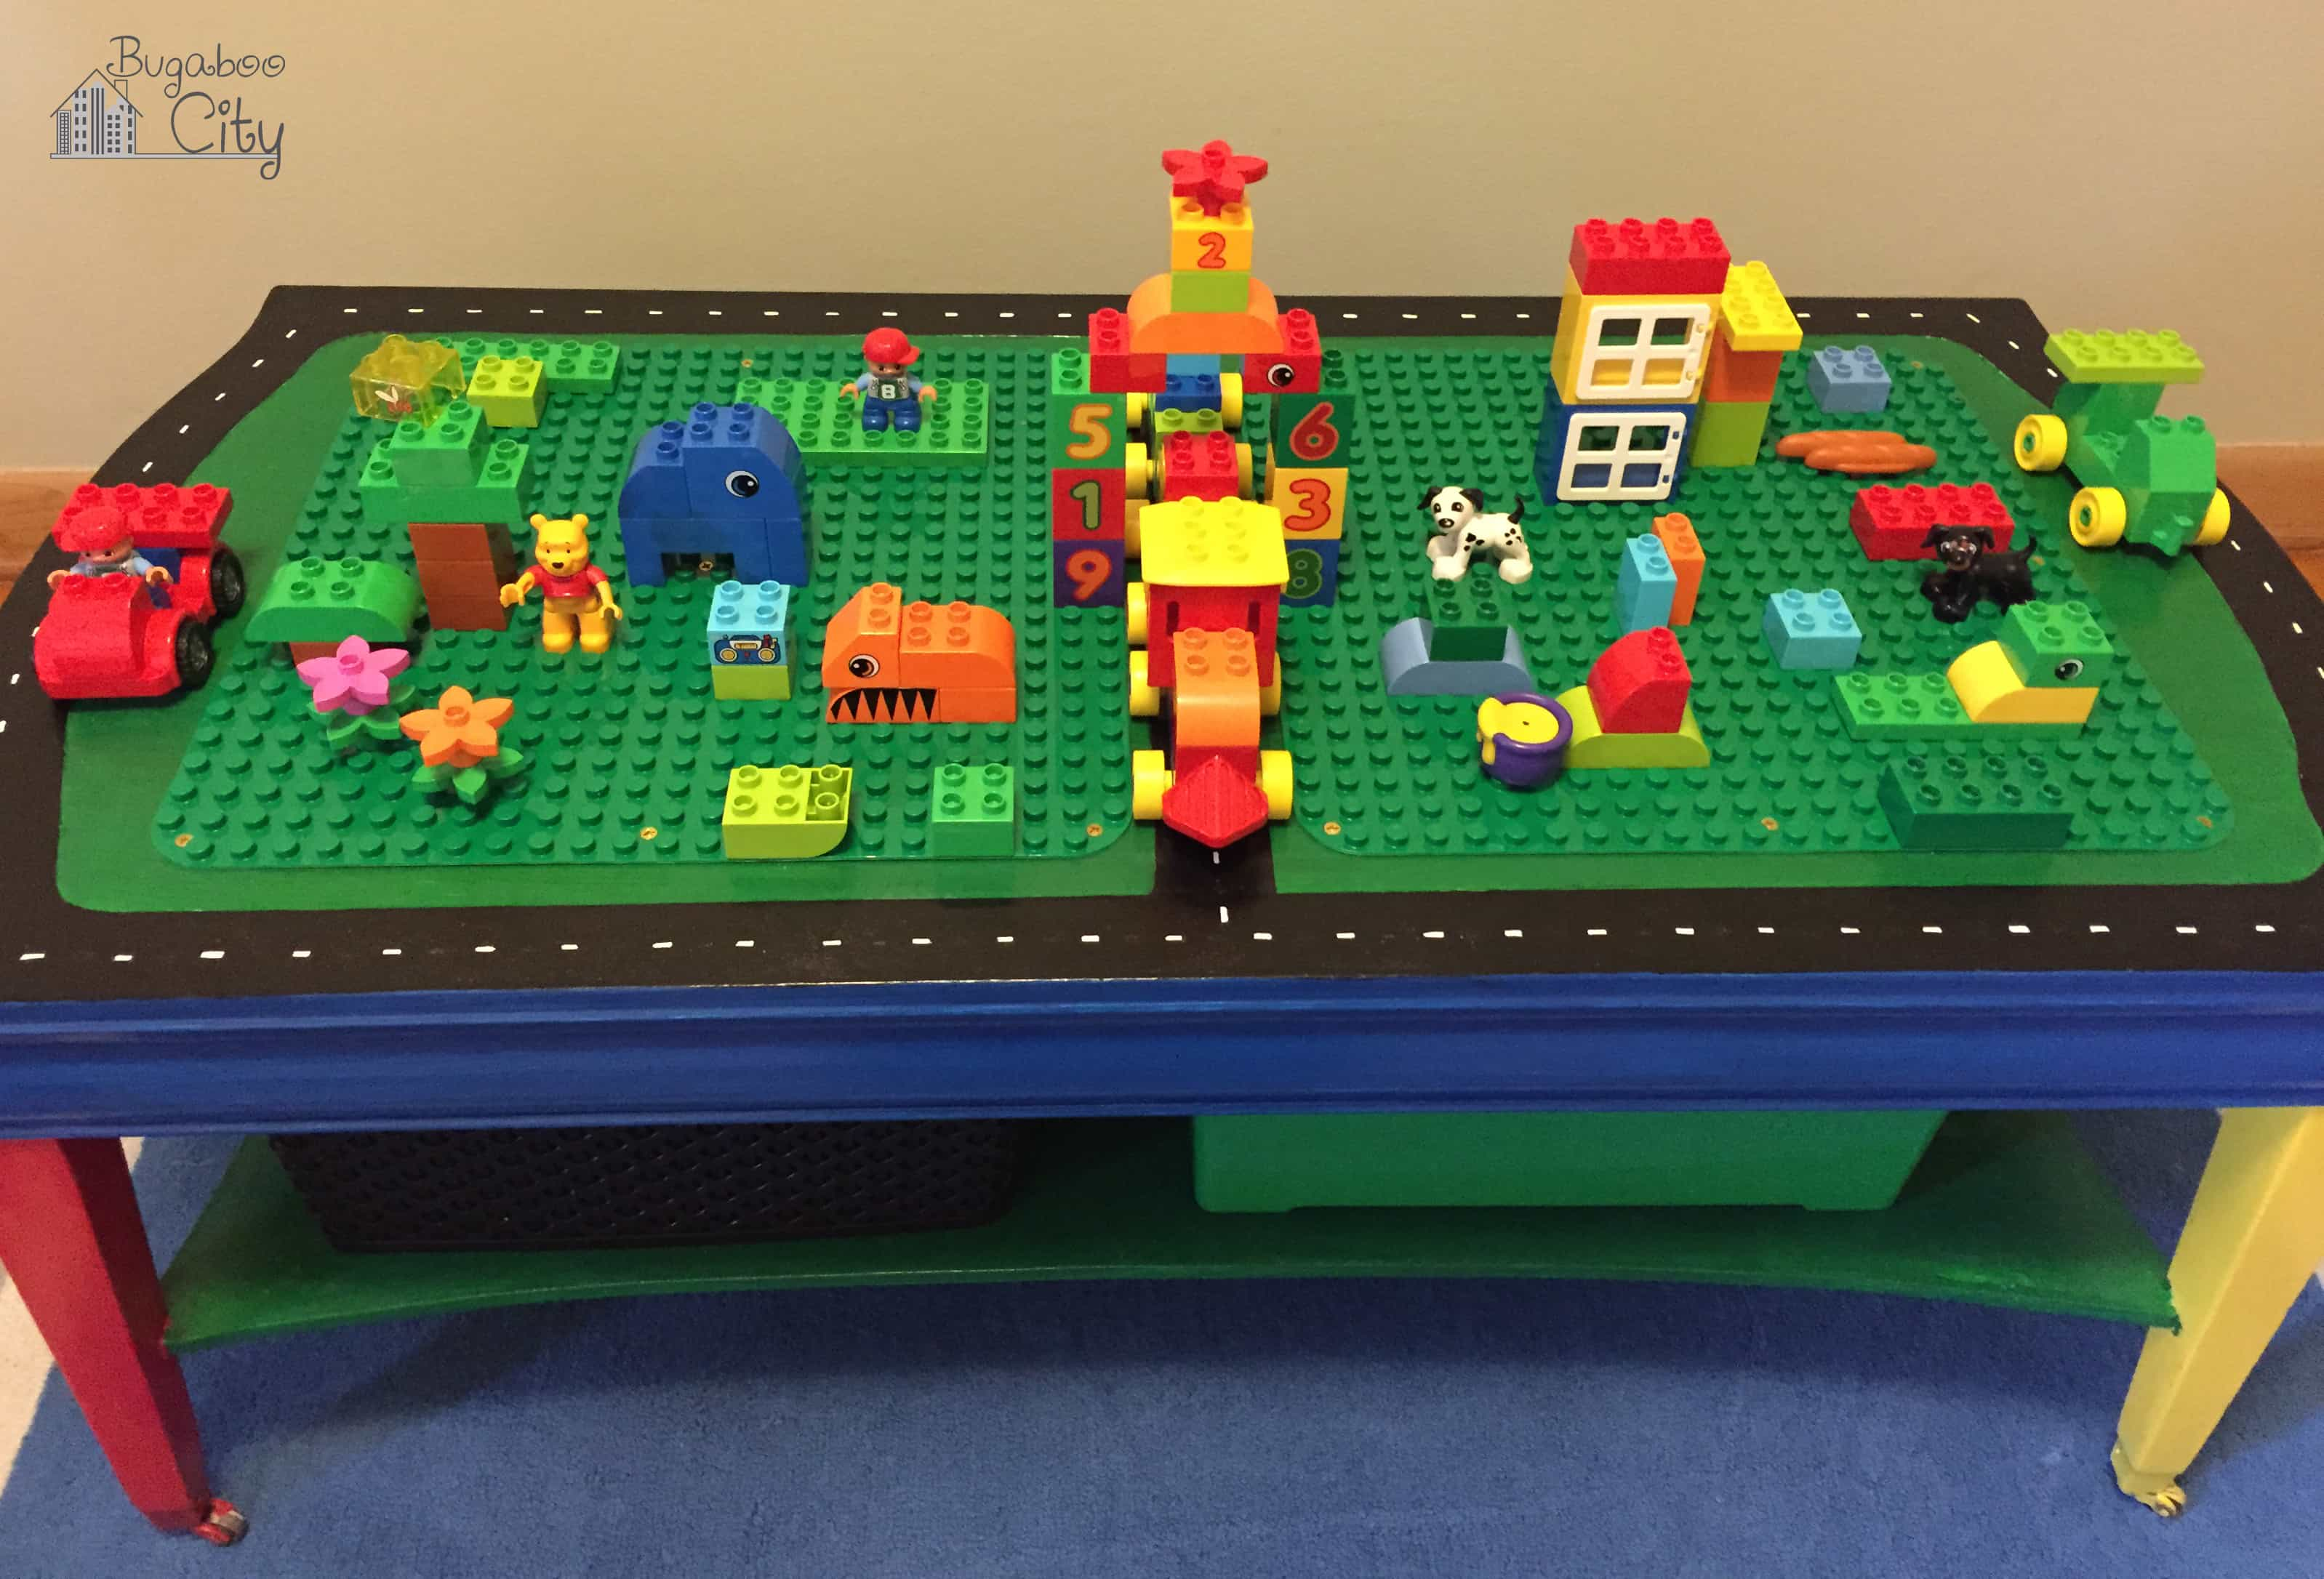 How To Make A Lego Table  Apps Directories -> Table Range Lego